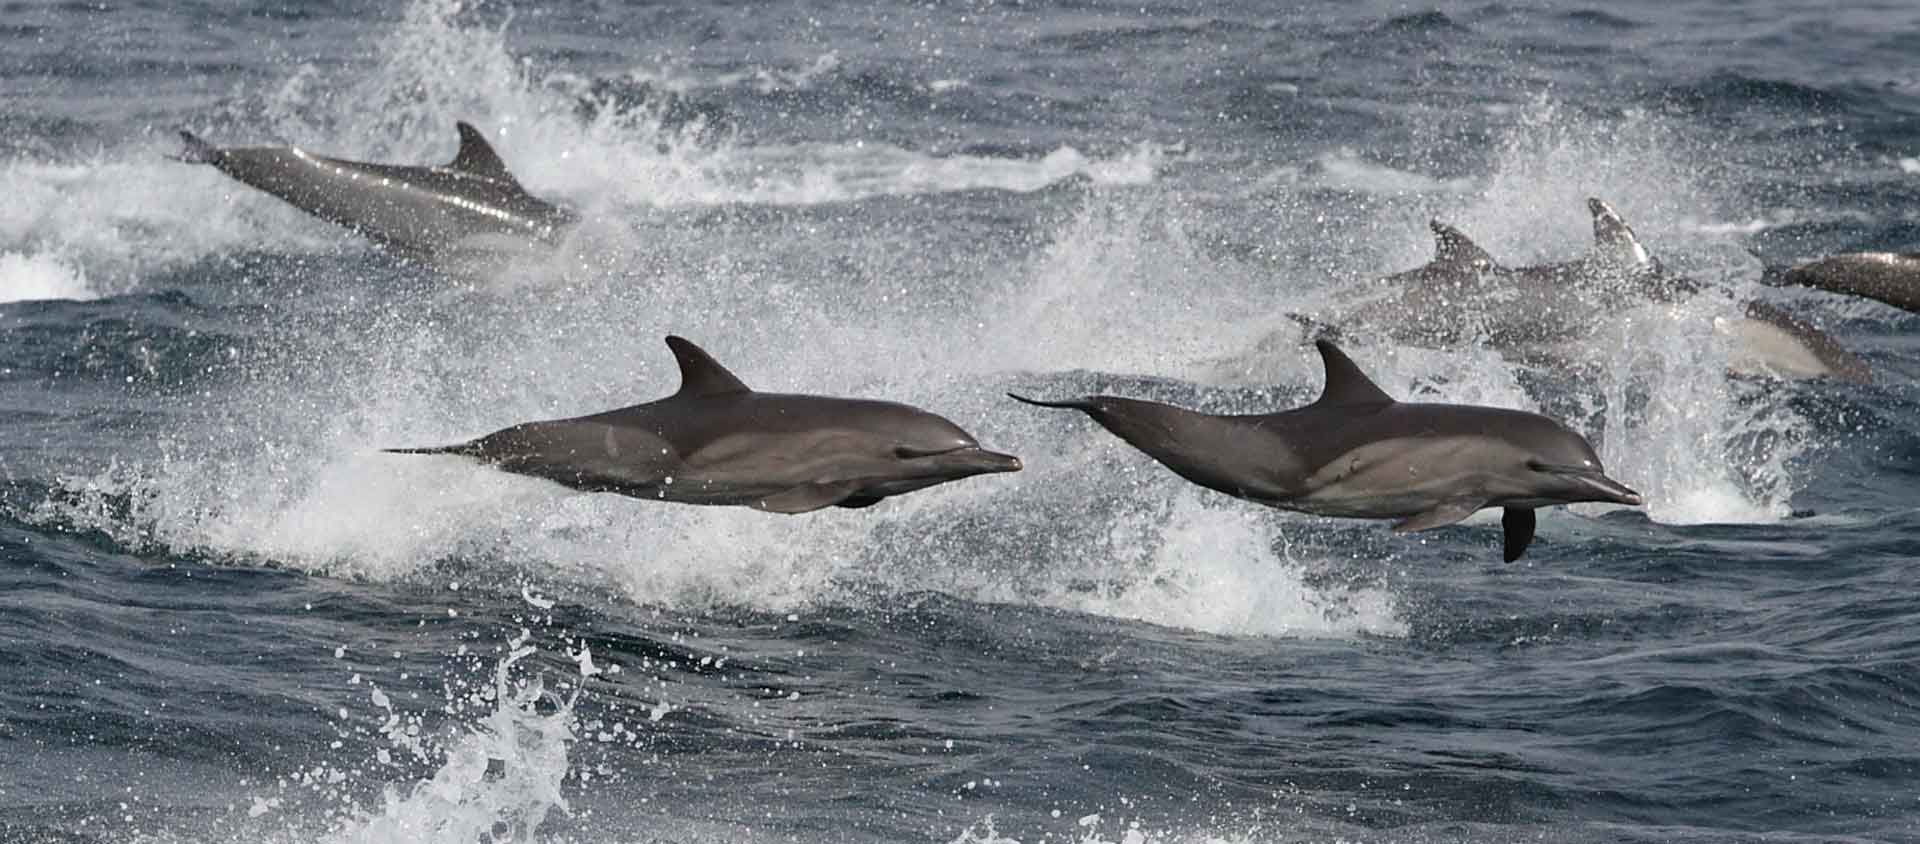 West Coast of Africa cruise slide showing Common Dolphins leaping